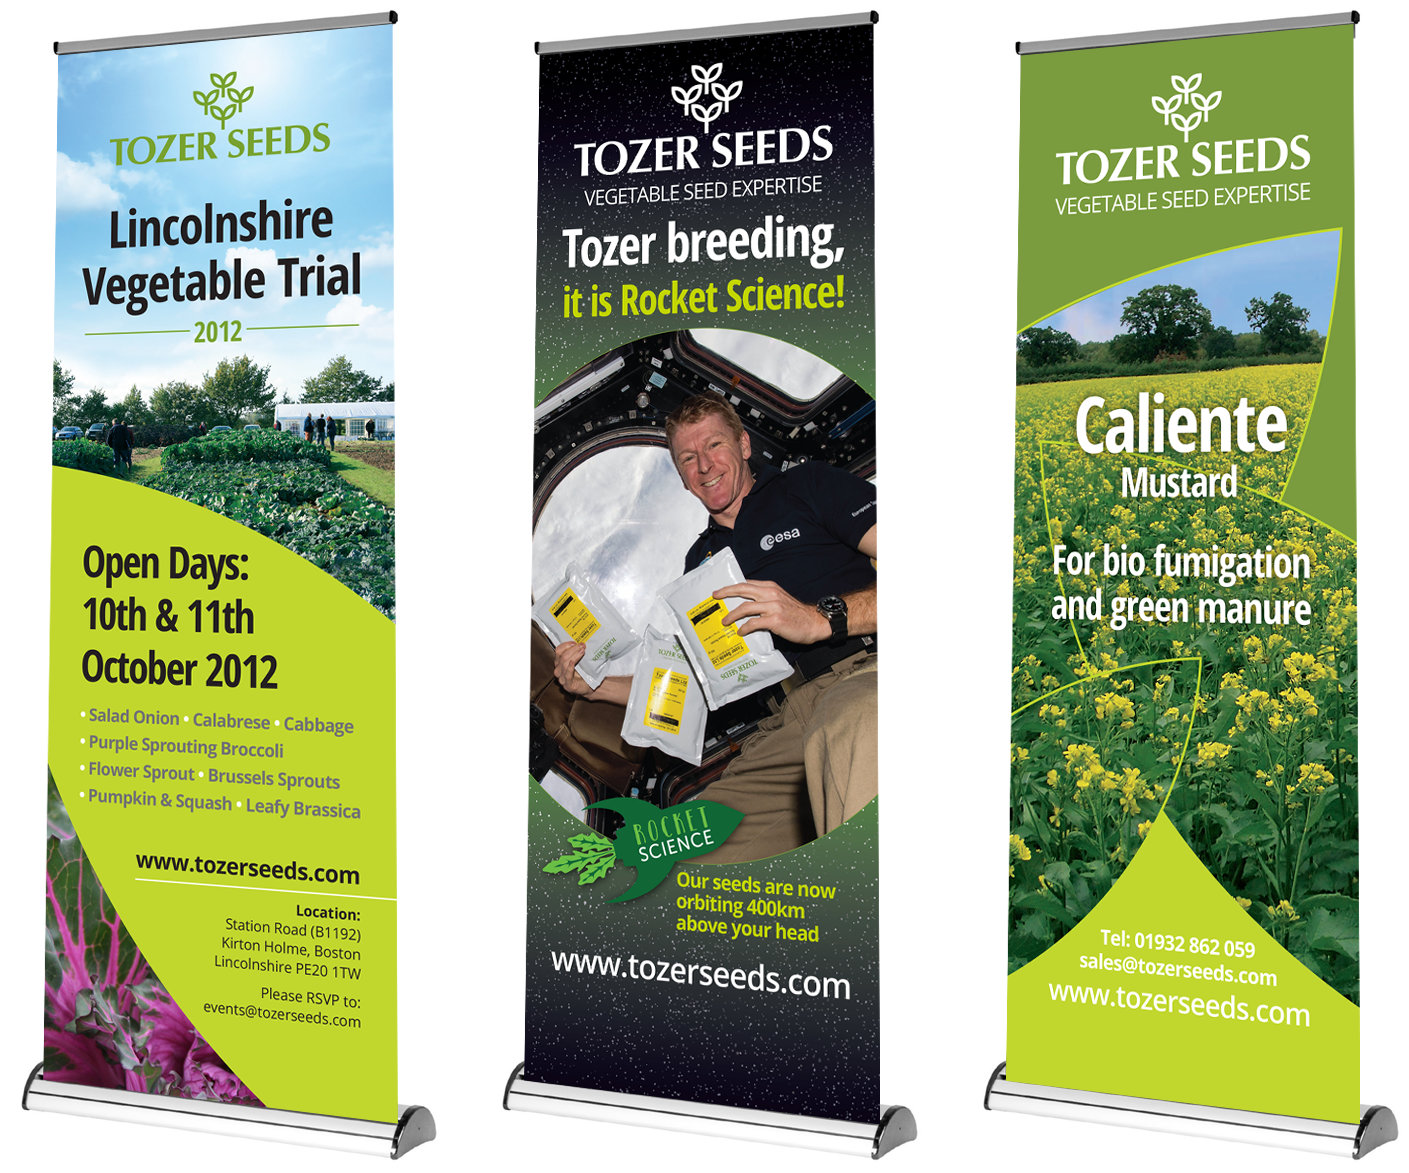 Tozer Seeds branding on exhibition stands